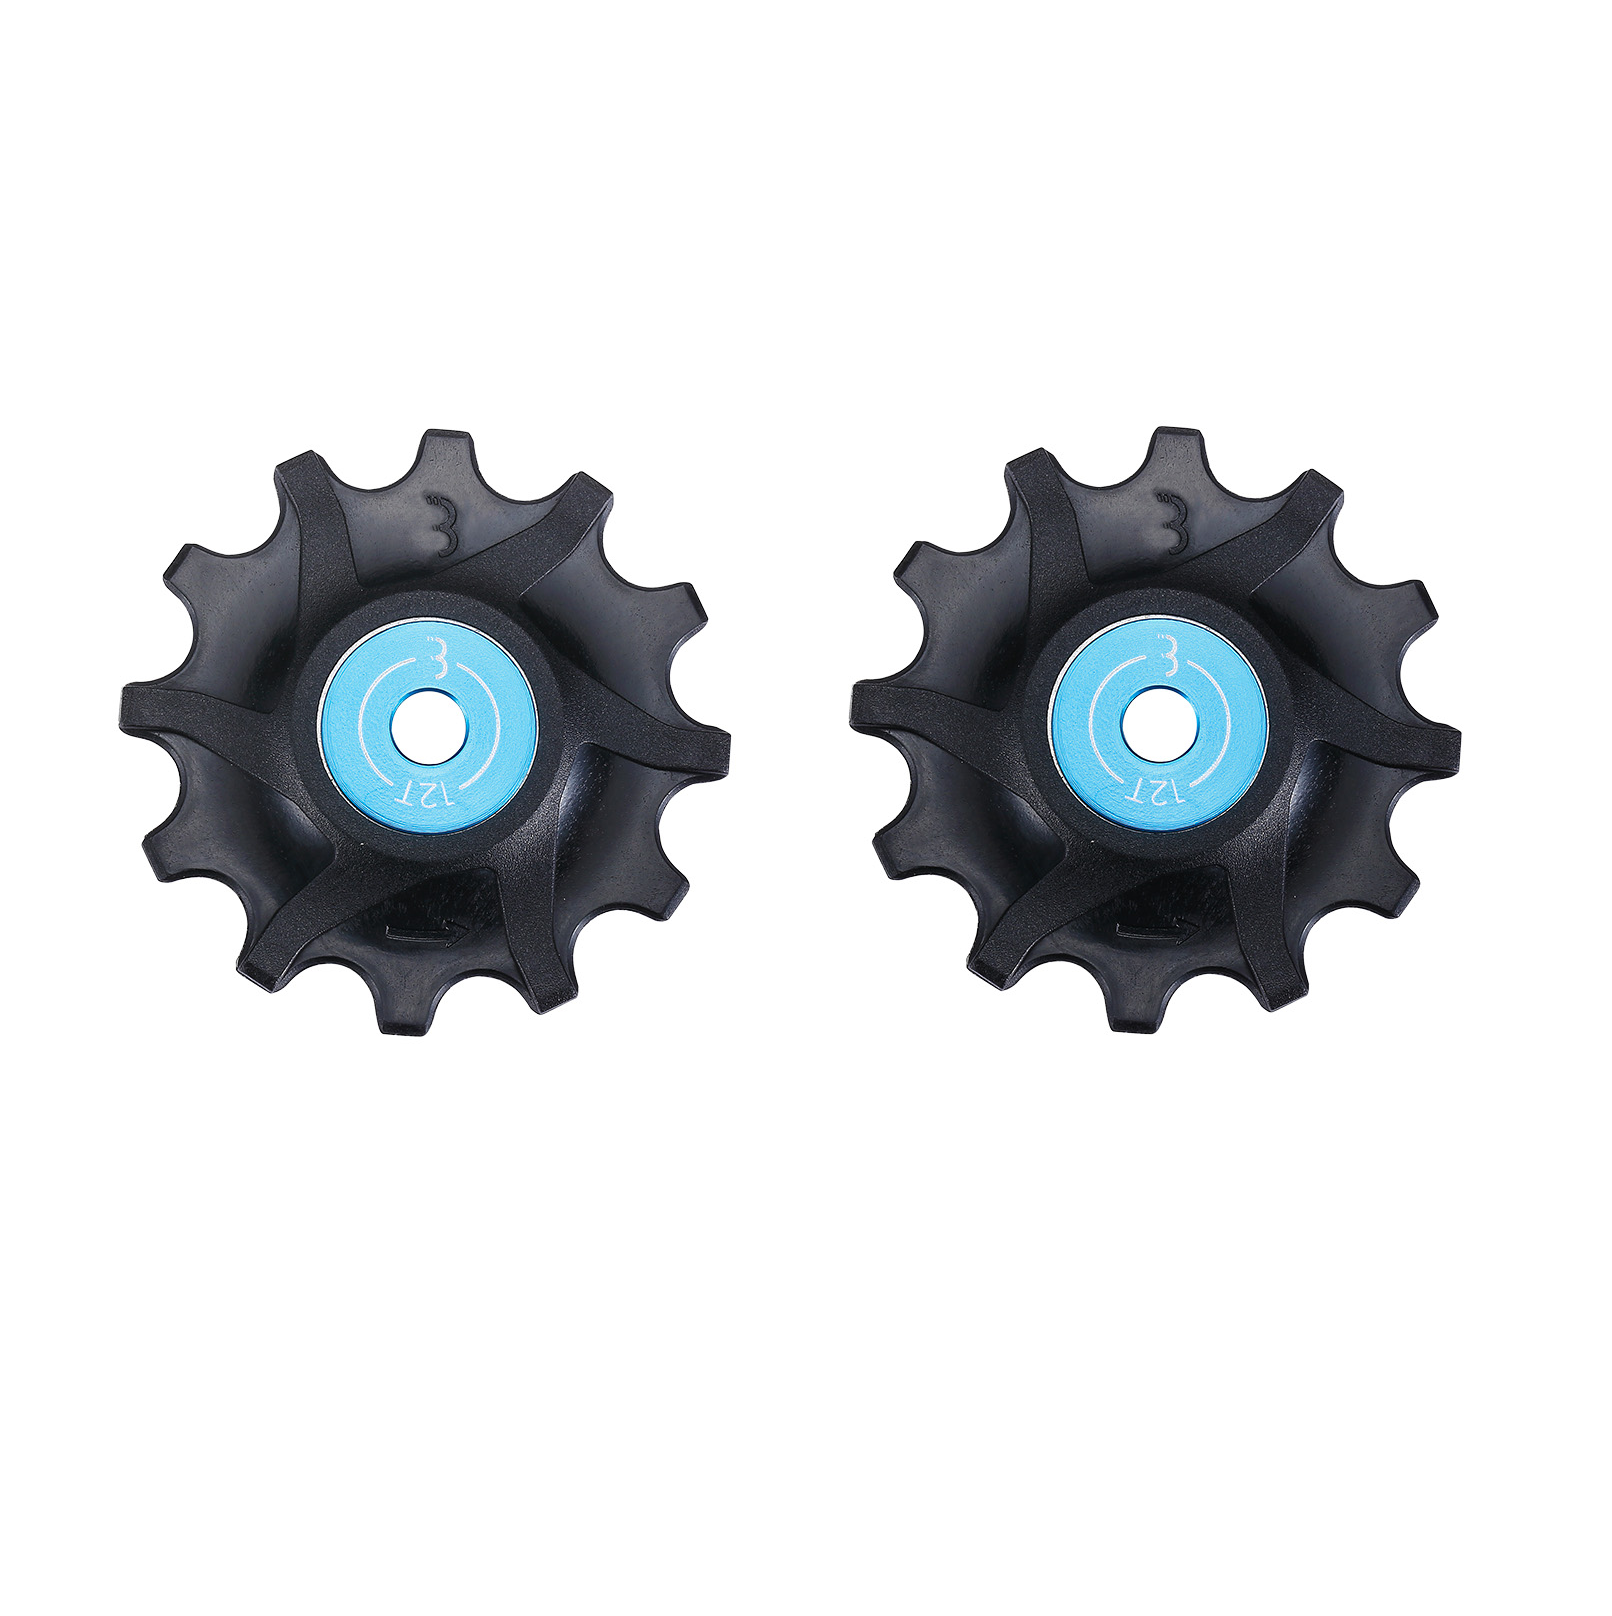 BBB Components > Gears BBB ROLLERBOYS SRAM JOCKEY WHEELS 12T BLACK